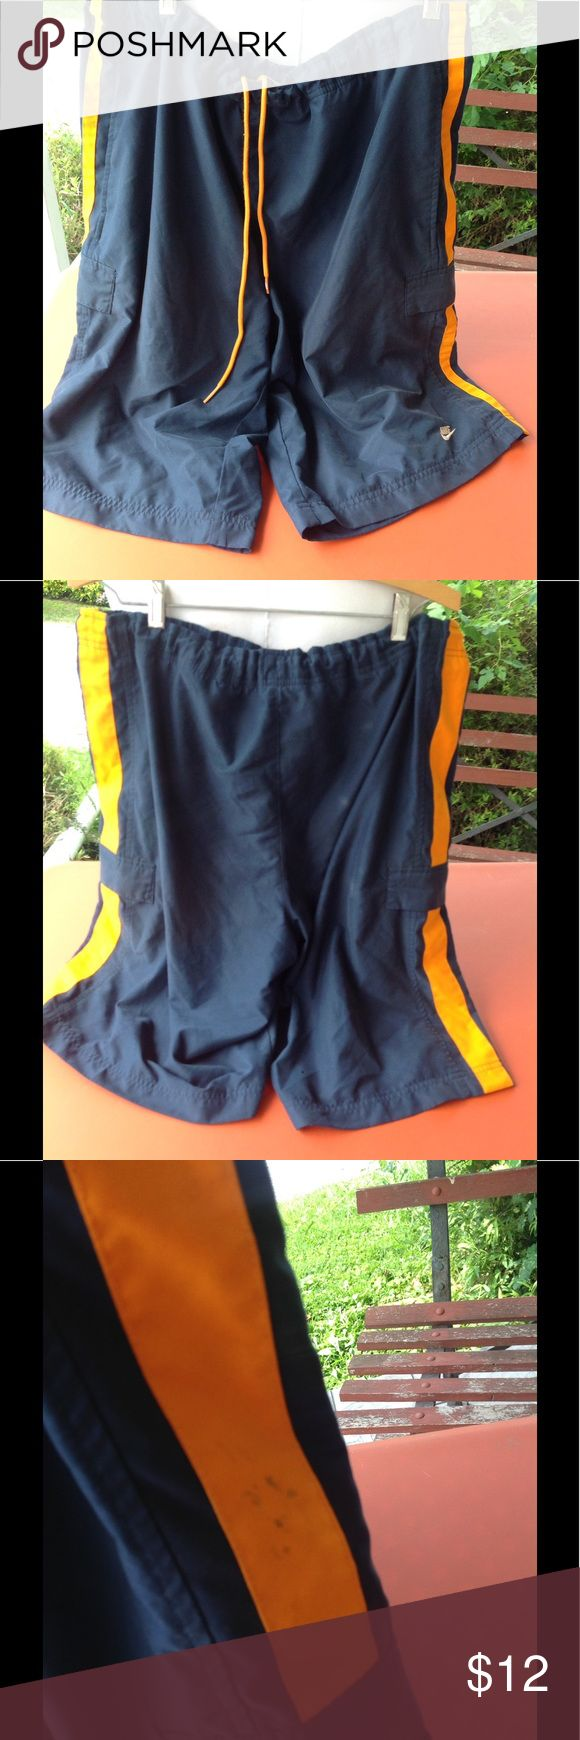 Mens nike shorts. They are a size xlarge, color is dark blue and orange, has some stains on the right side and a small hole, and some fading spot on the back, sale is final i do not accept returns. Nike Shorts Athletic